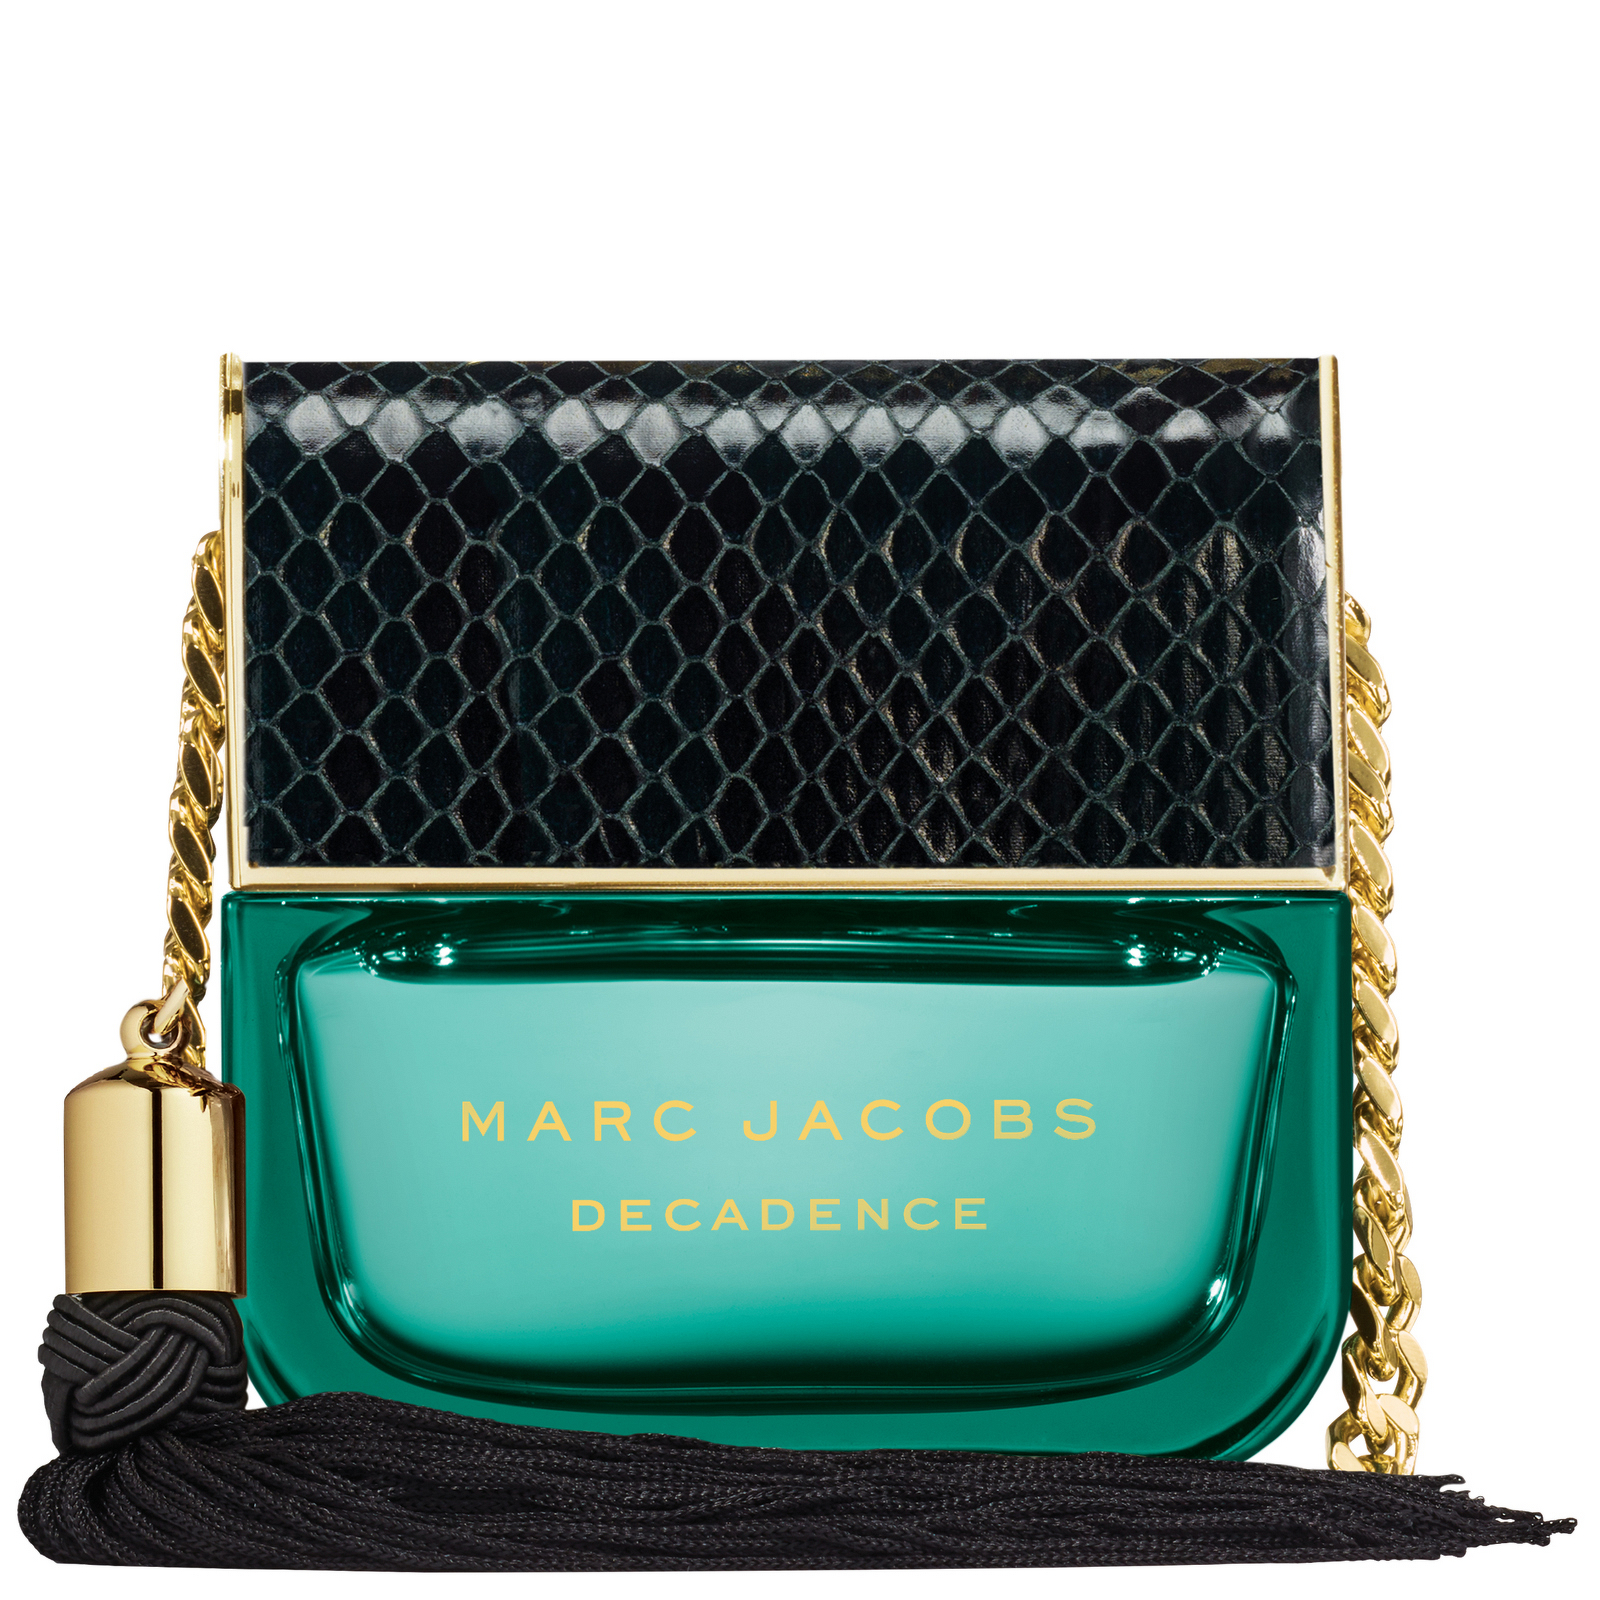 Marc Jacobs Decadence Eau de Parfum Spray 100ml